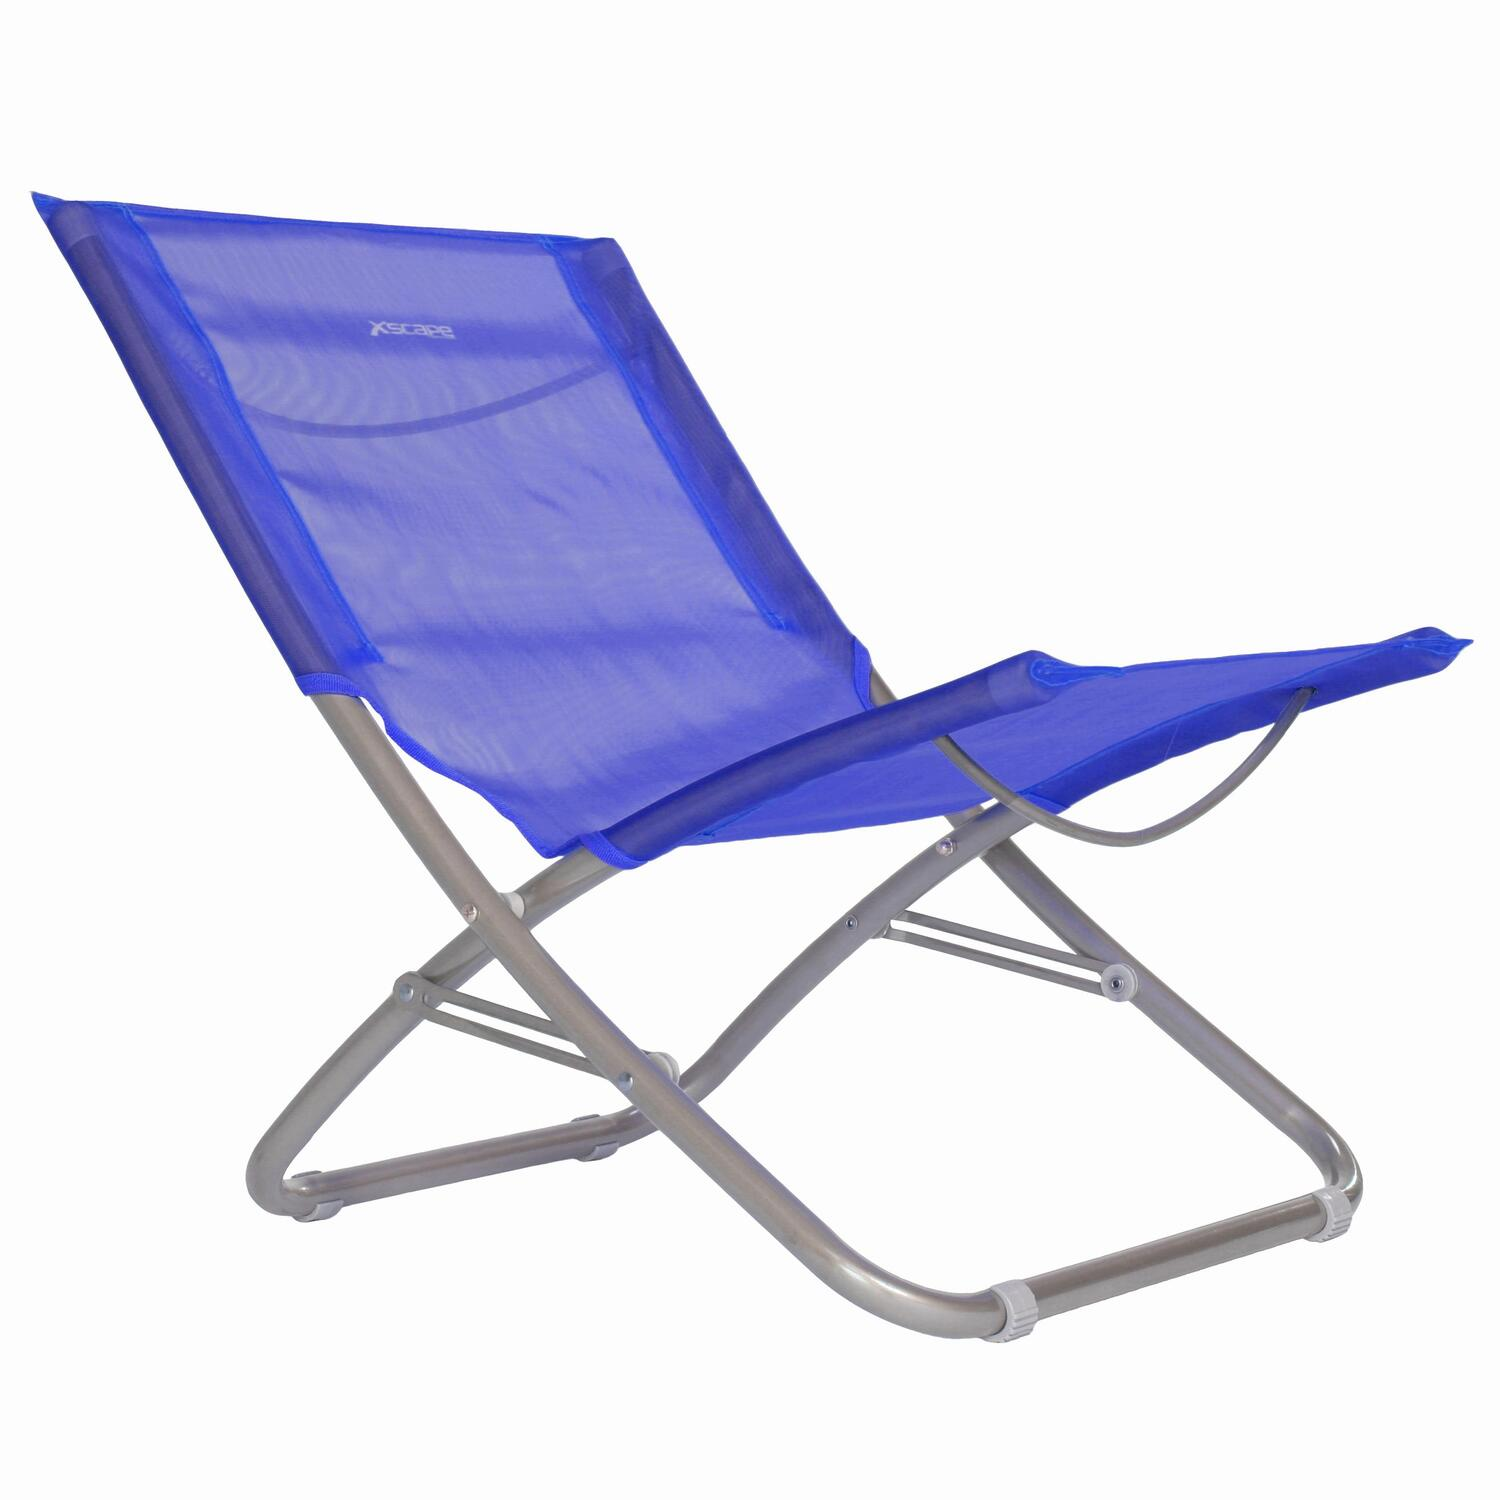 ... Office Luxury Furniture Designer. on folding beach chair wood plans